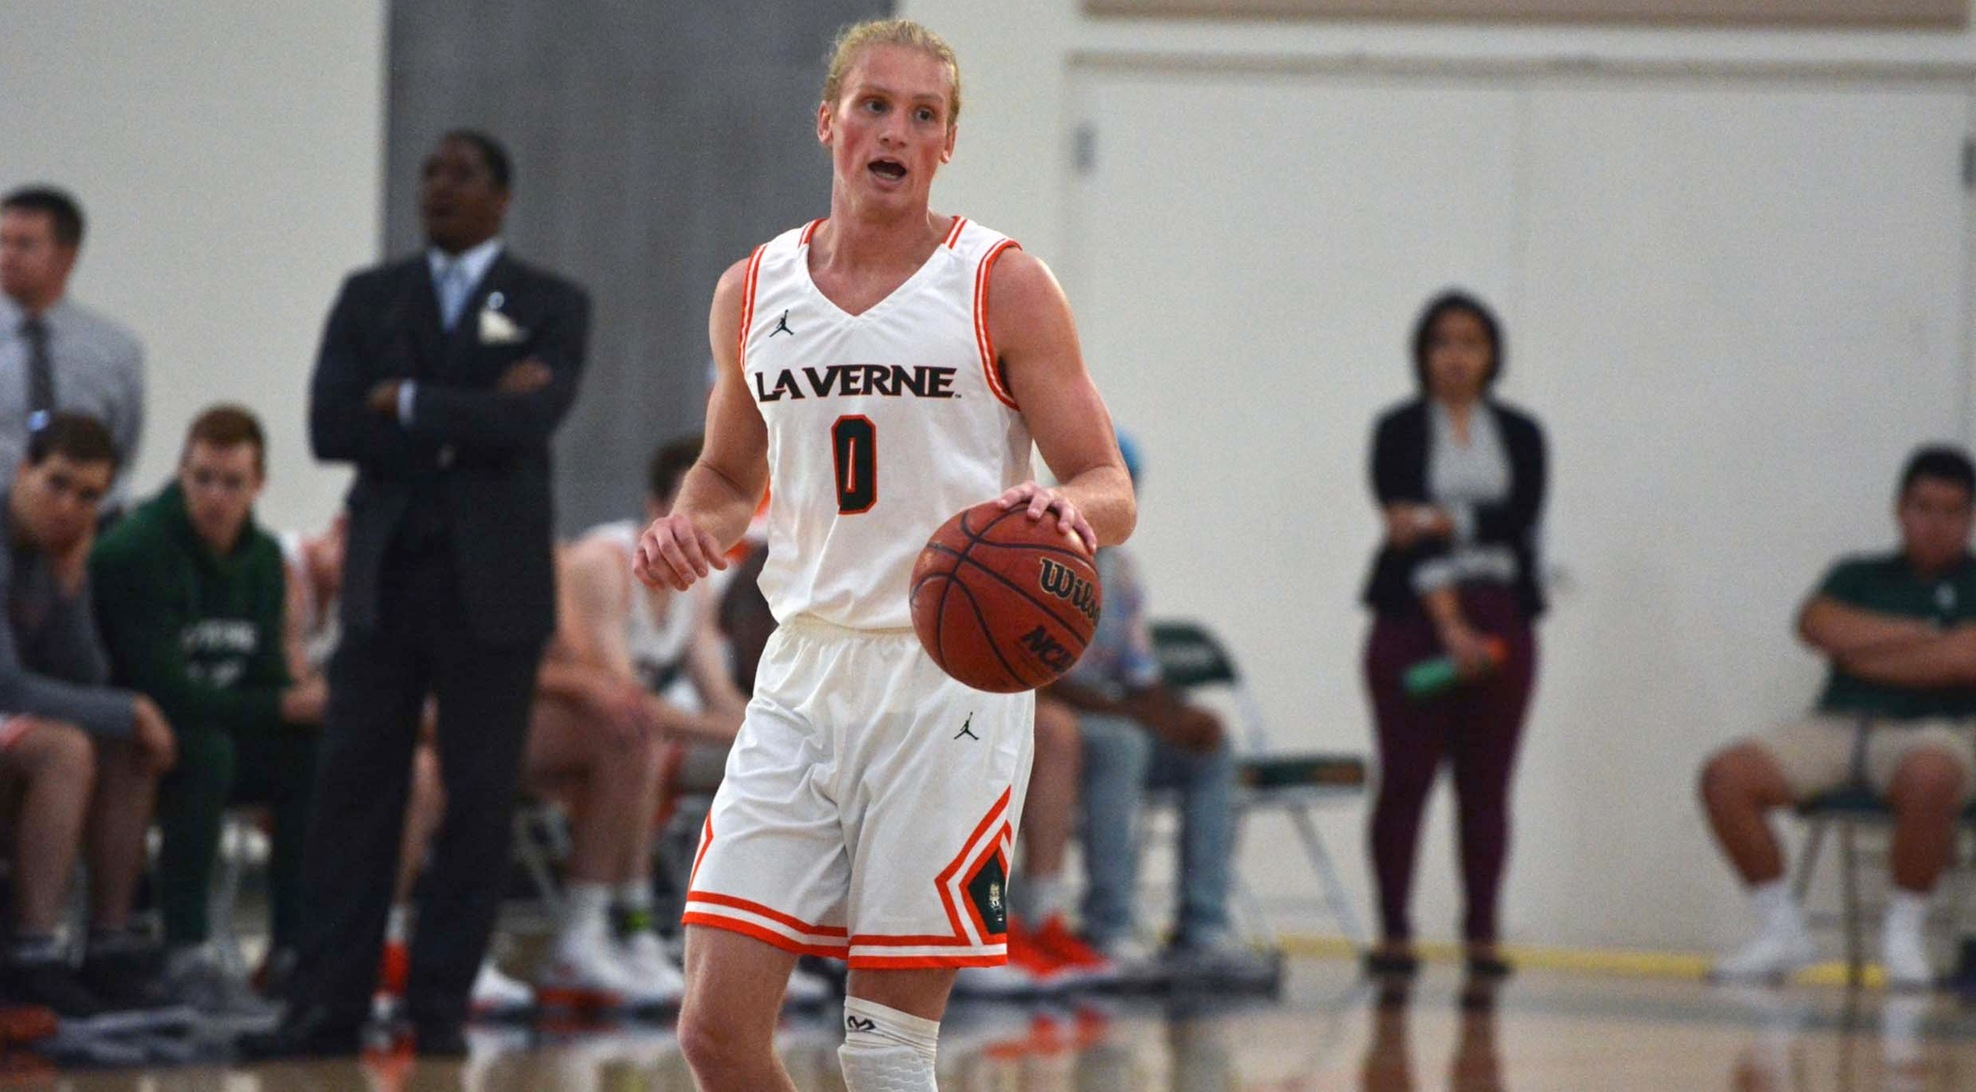 Currie scores career-high at Chapman